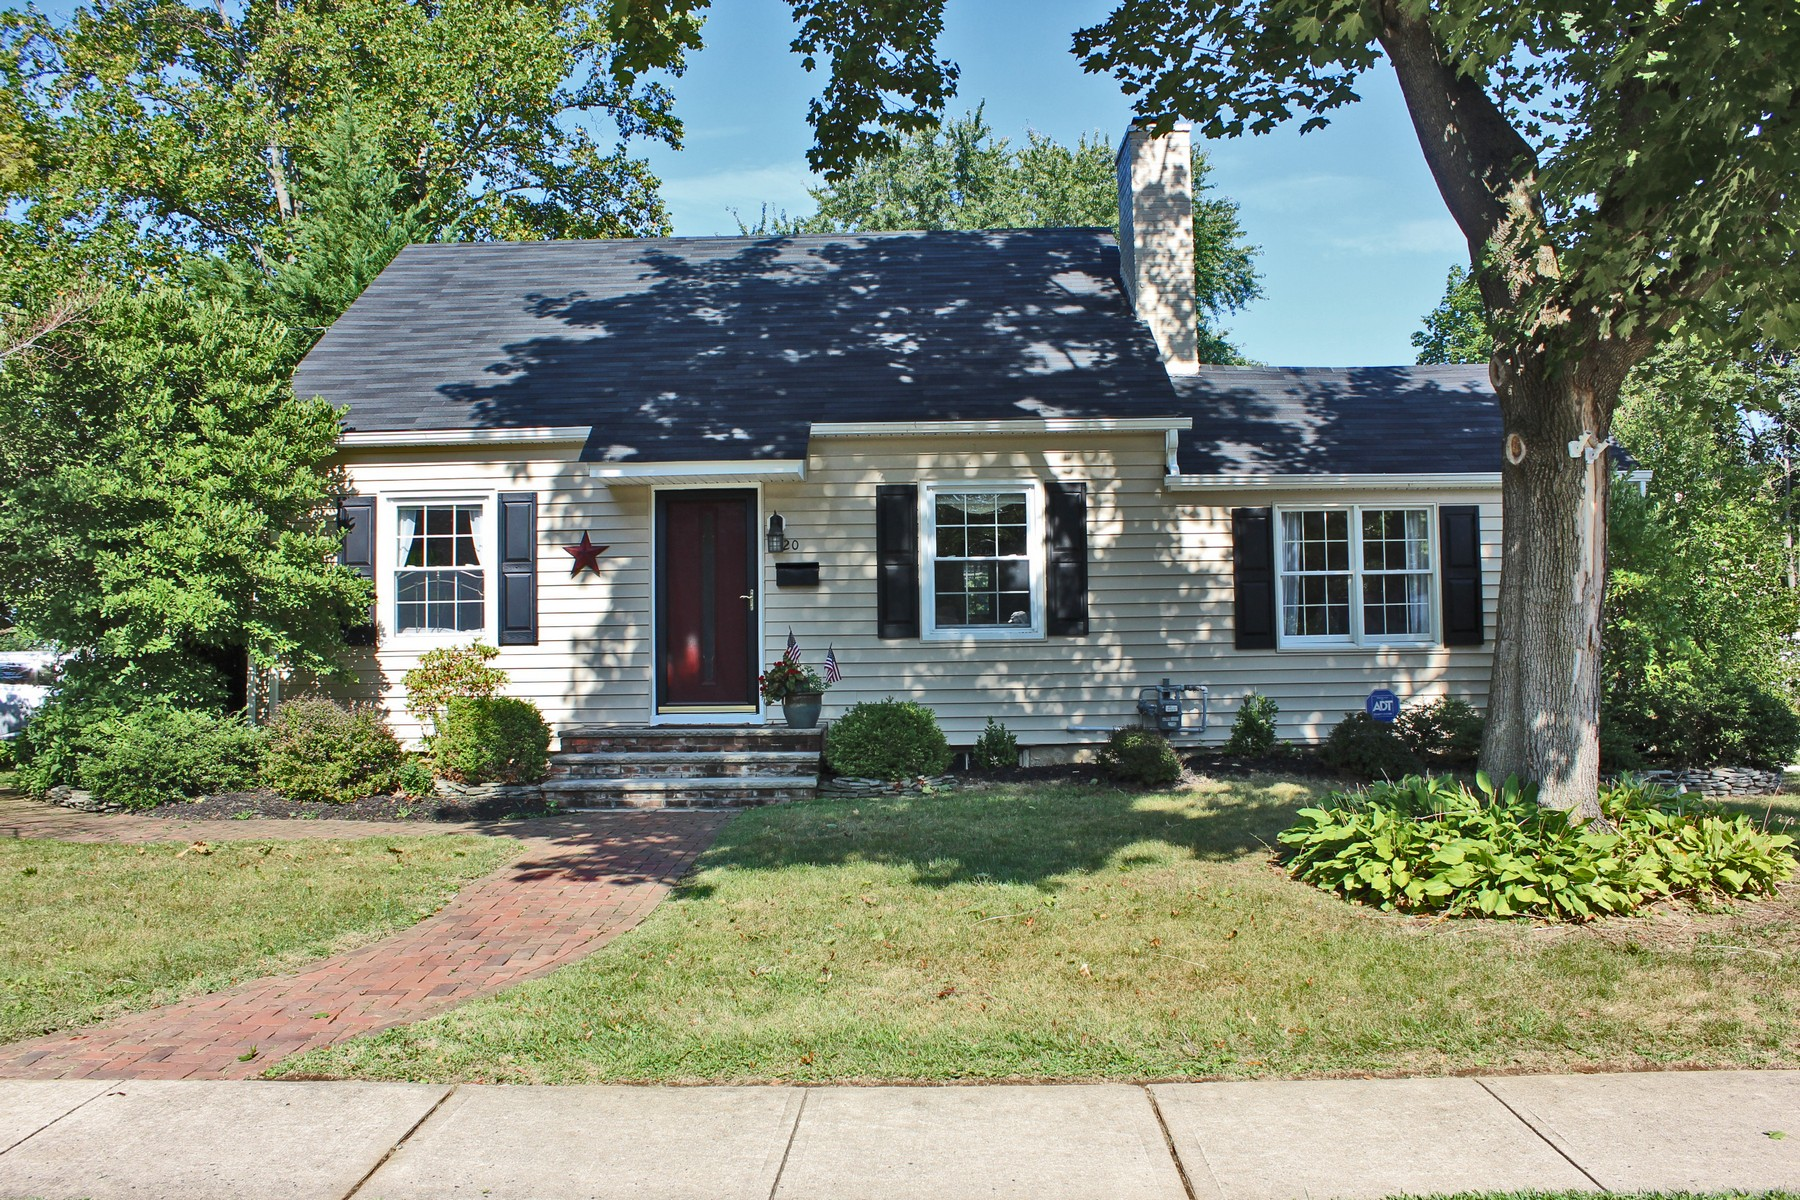 Single Family Home for Sale at Charming Cape in Lovely Neighborhood 20 Weldon Road Matawan, New Jersey 07747 United States